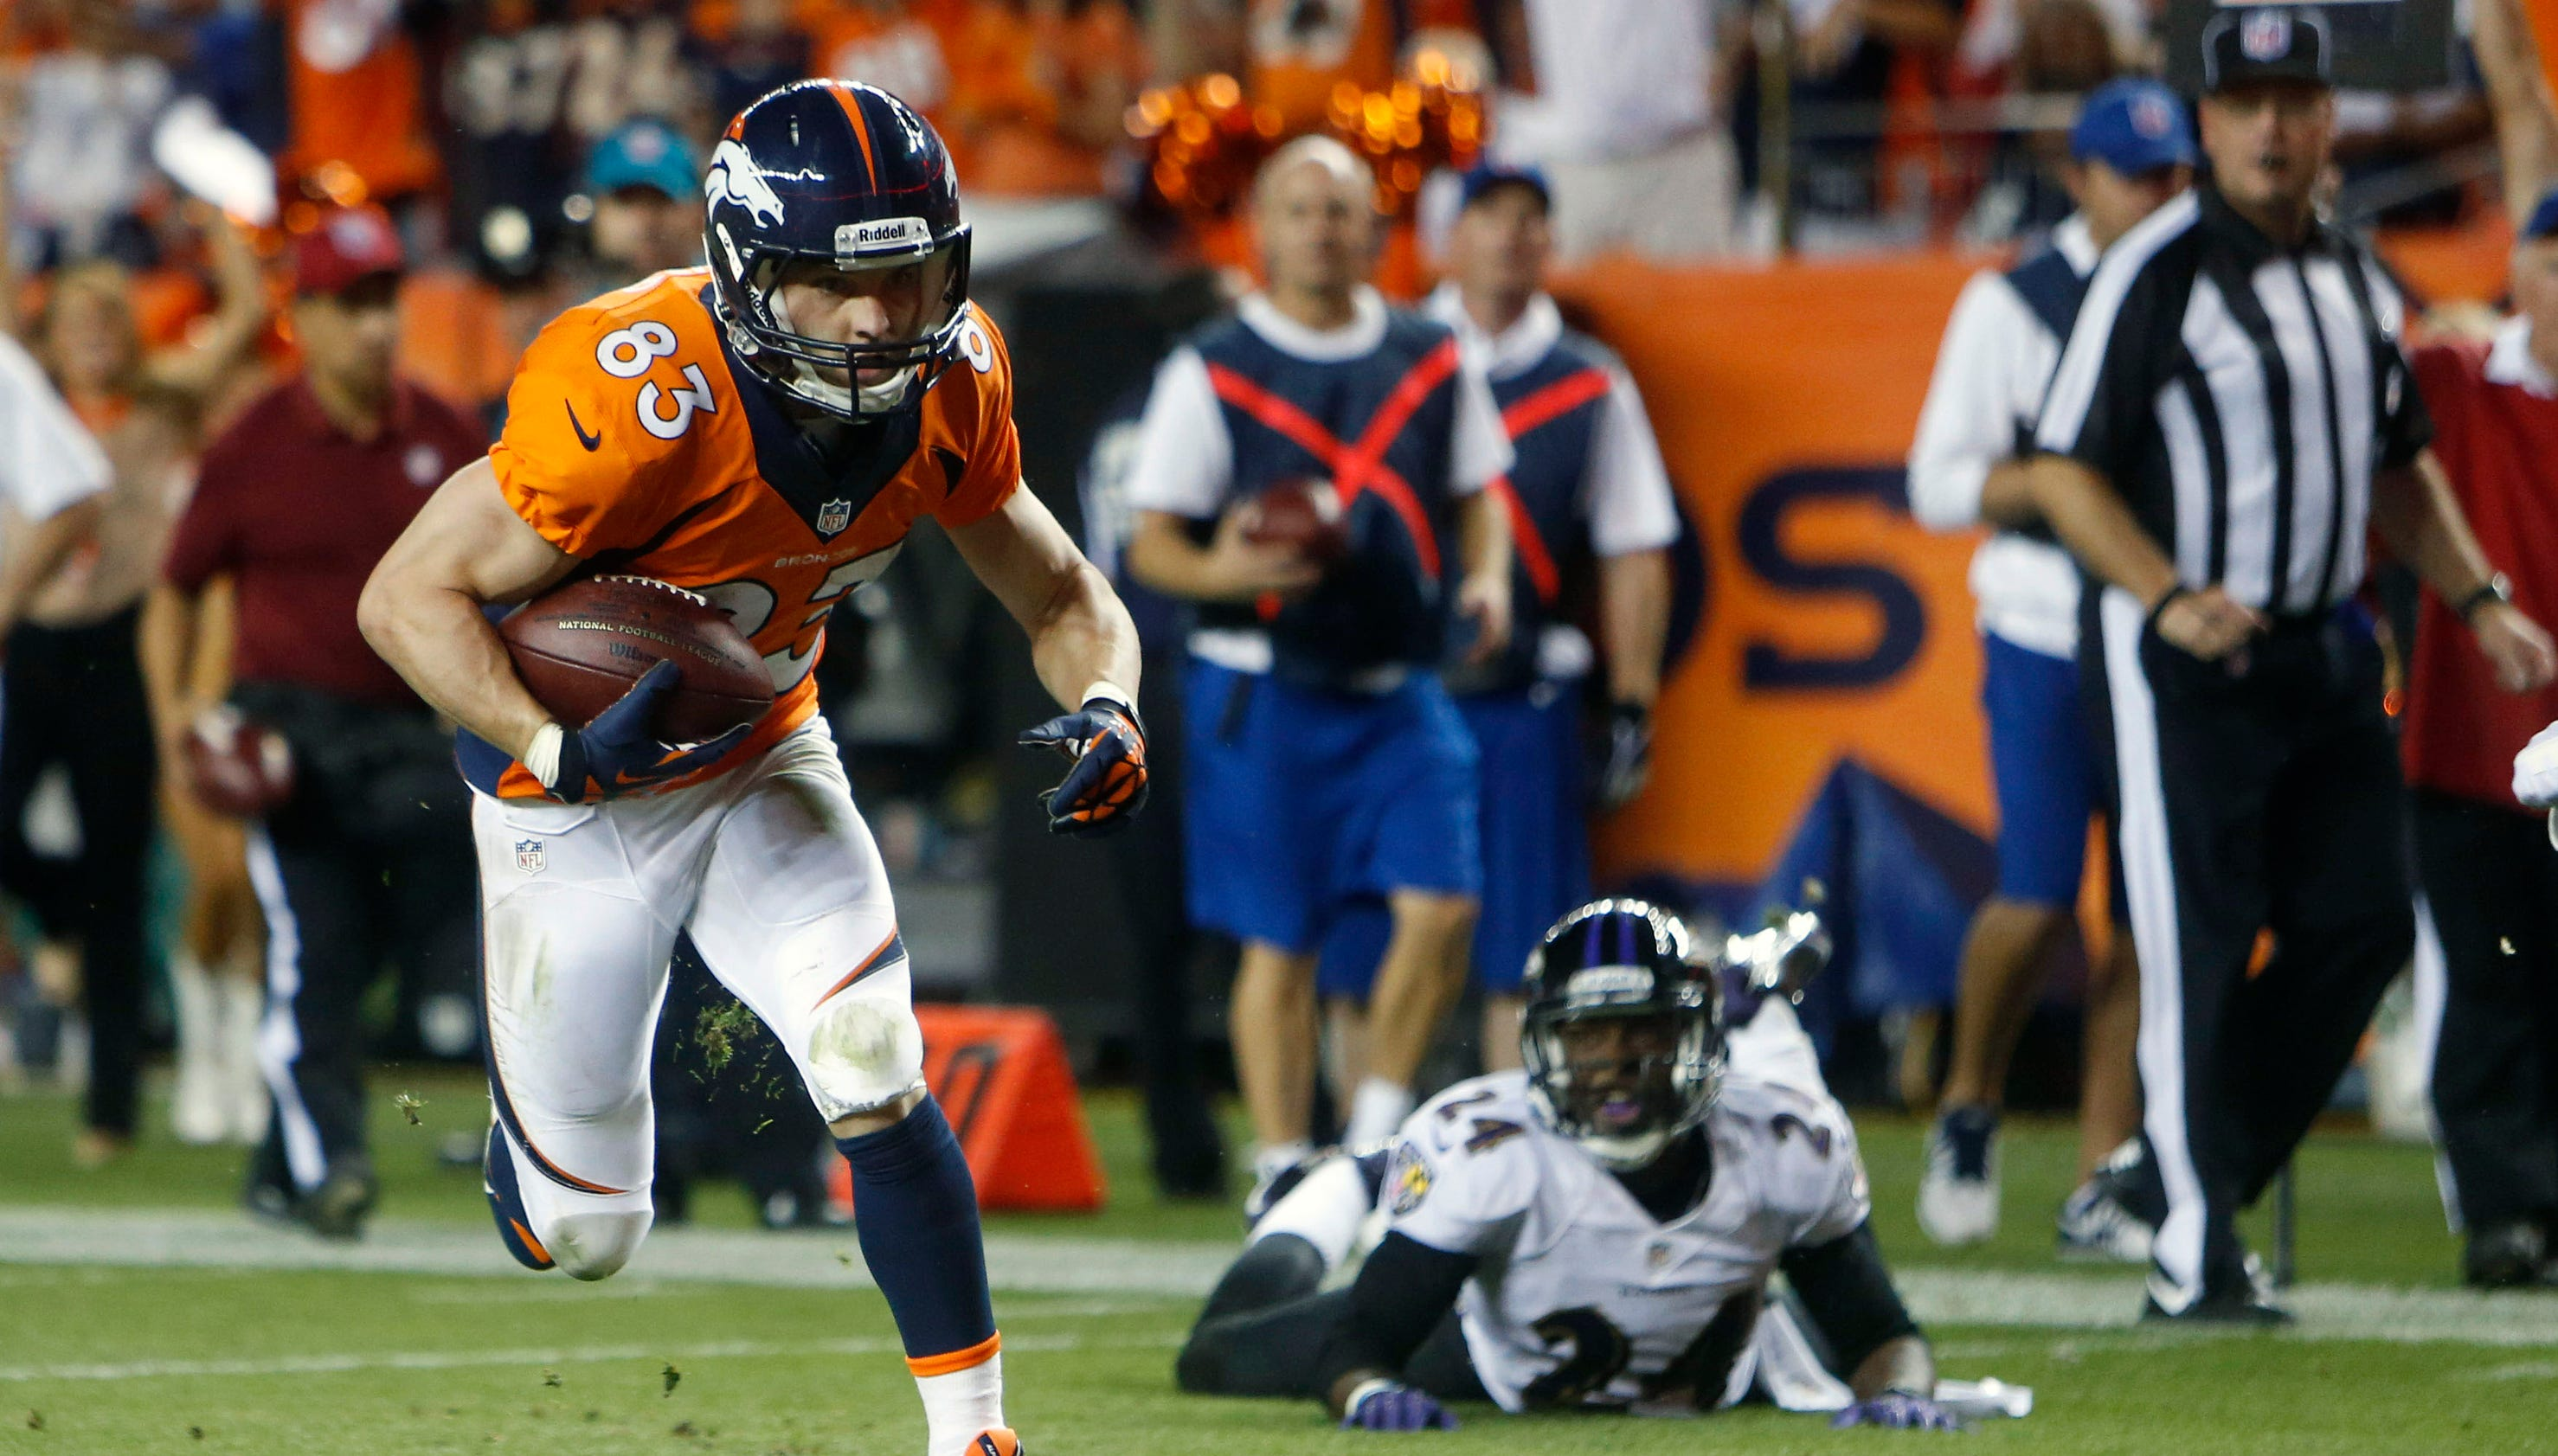 Ravens Harbaugh: I was unaware of pivotal Welker drop